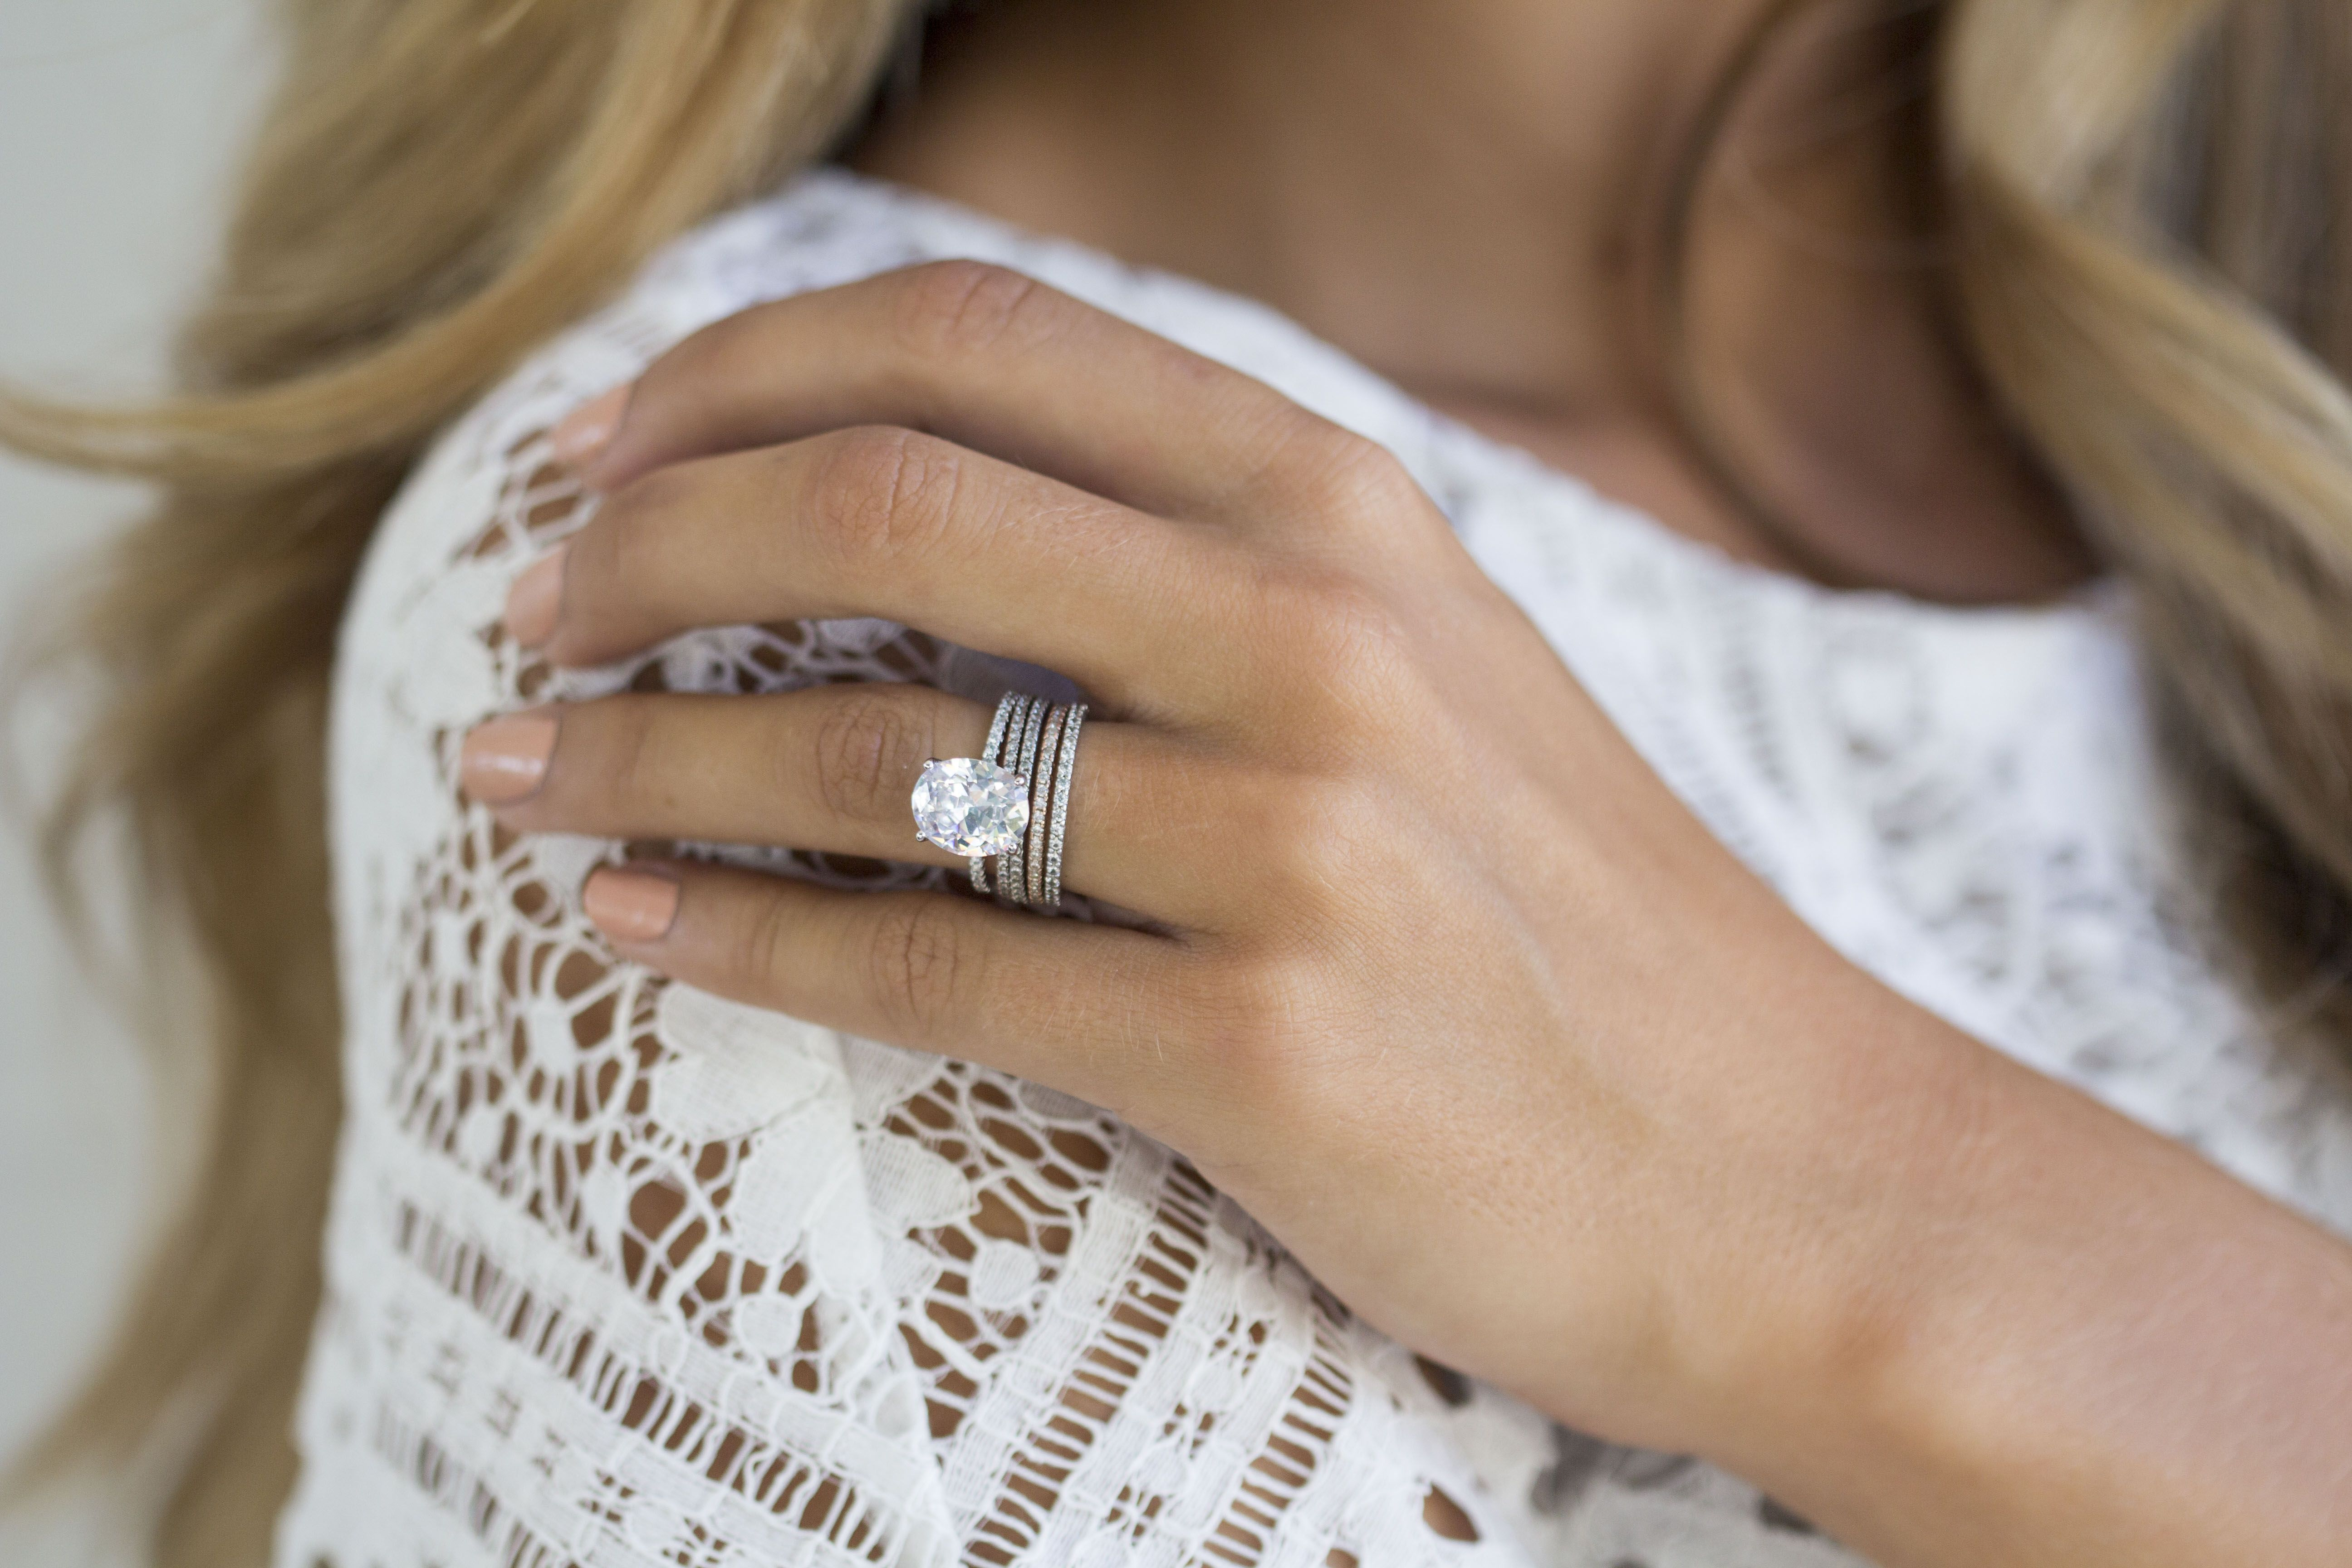 The Lively Ring Was Inspired By Blake Lively's Rock But Made Of A 3 Carat Oval Cut Simulated Diamond In Sterling Silver And Is Only 99 Everlyshop: Cat Maid Wedding Ring At Websimilar.org